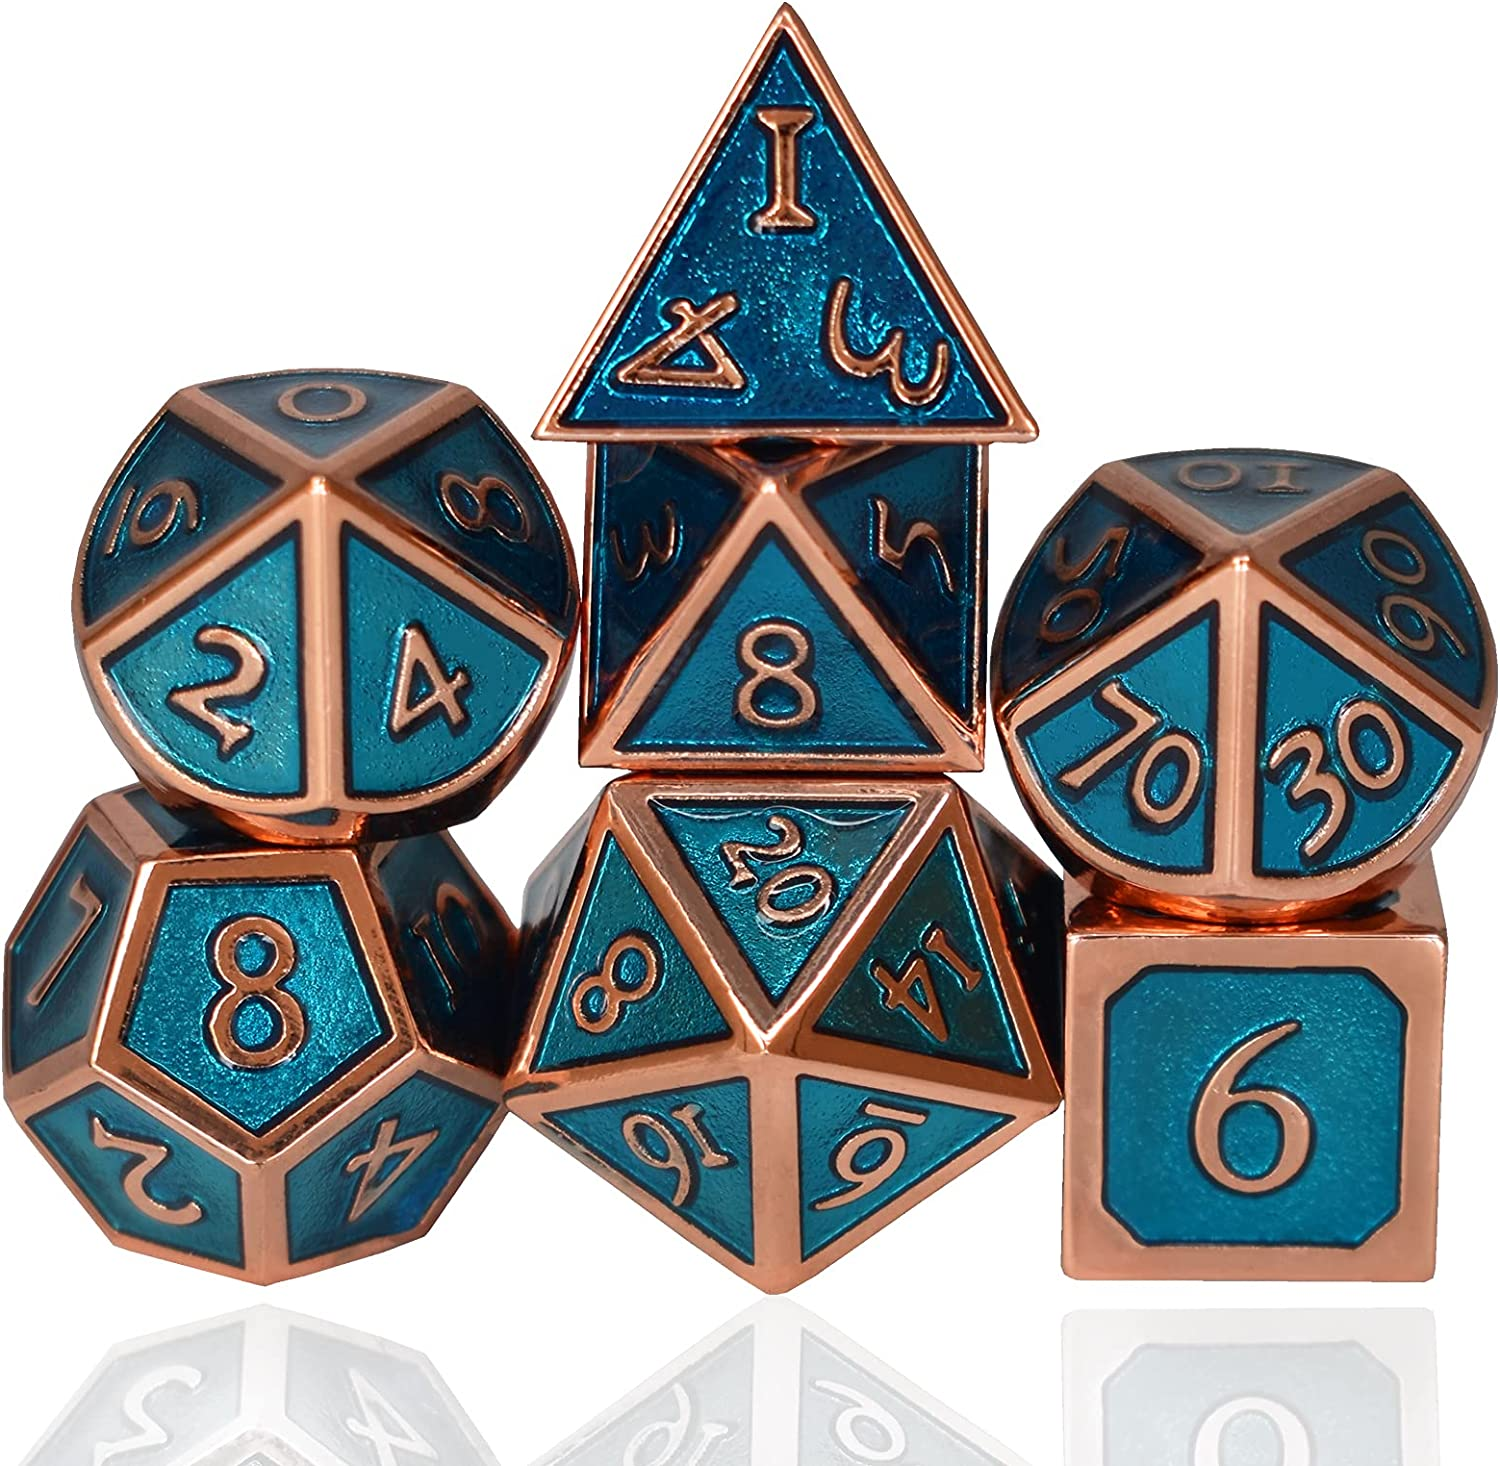 RULE DICE Metal Max 72% OFF Same day shipping DND Dice Dragons and with Dungeons Set